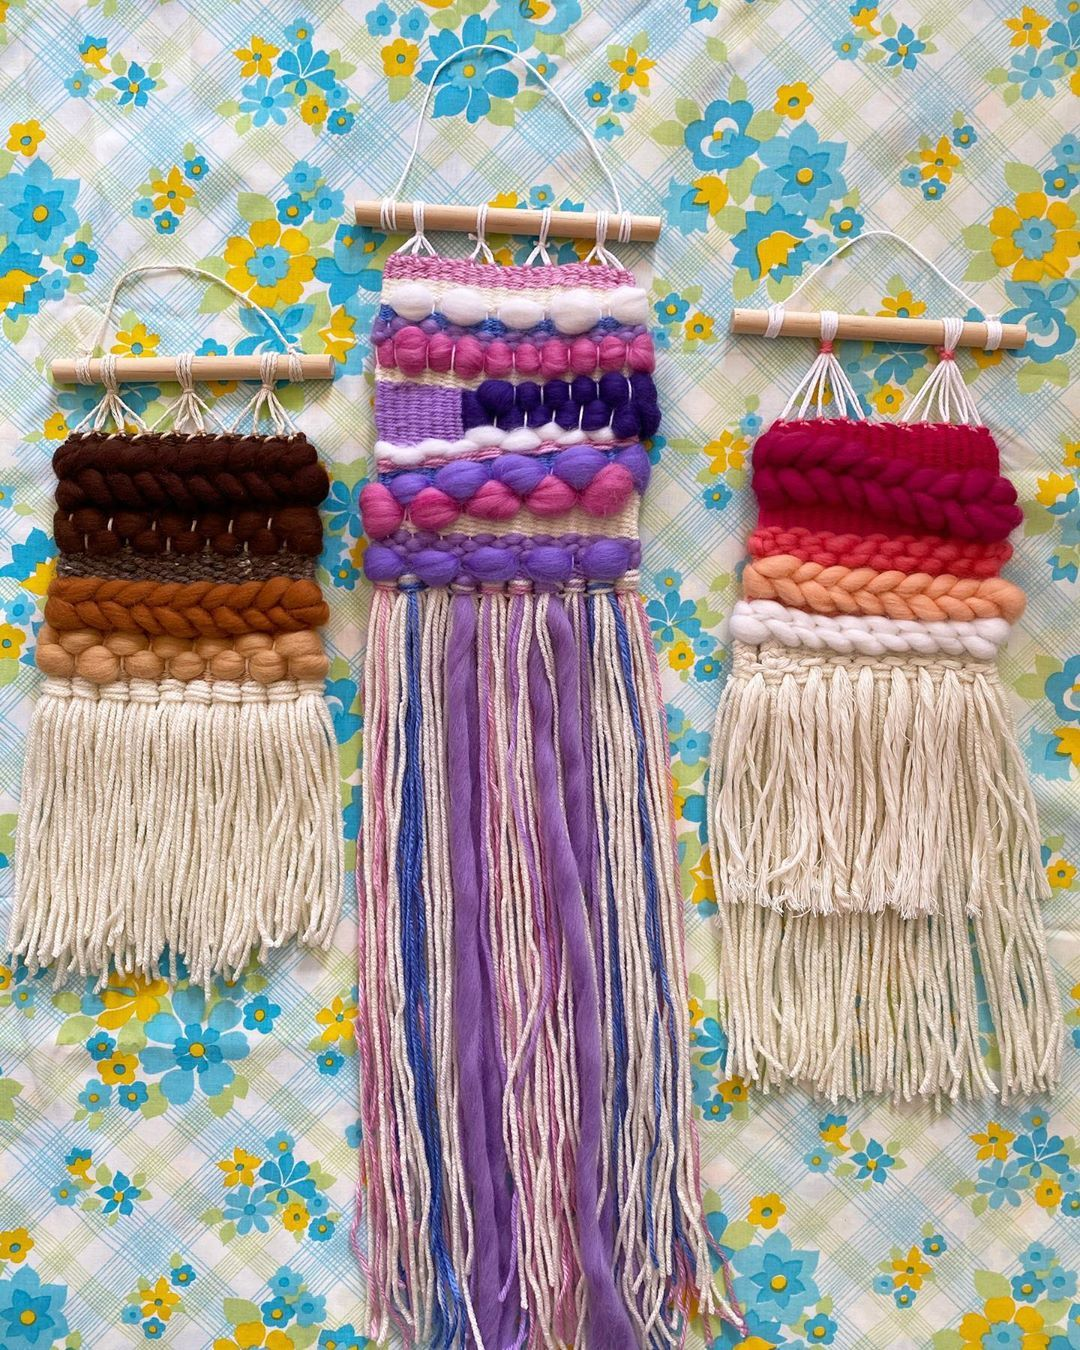 We are just loving these mini weaves at the moment. The perfect size for a gift and can be made in any colour combination to suit your style. Just send us a DM if you want to order 🌈 . . . . . . . . . . #weave #weaving #weaversofinstagram #makersofinstagram #wovenwallhanging #wallhanging #melbourneart #madeinmelbourne #handwoven #handmadeisbest #woventextiles #loomweaving #fibreartist #modernweaving #colourpop #crashbangcolour #mycolourfulinterior #colorlovedecor #interiors #melbournestyle #ets